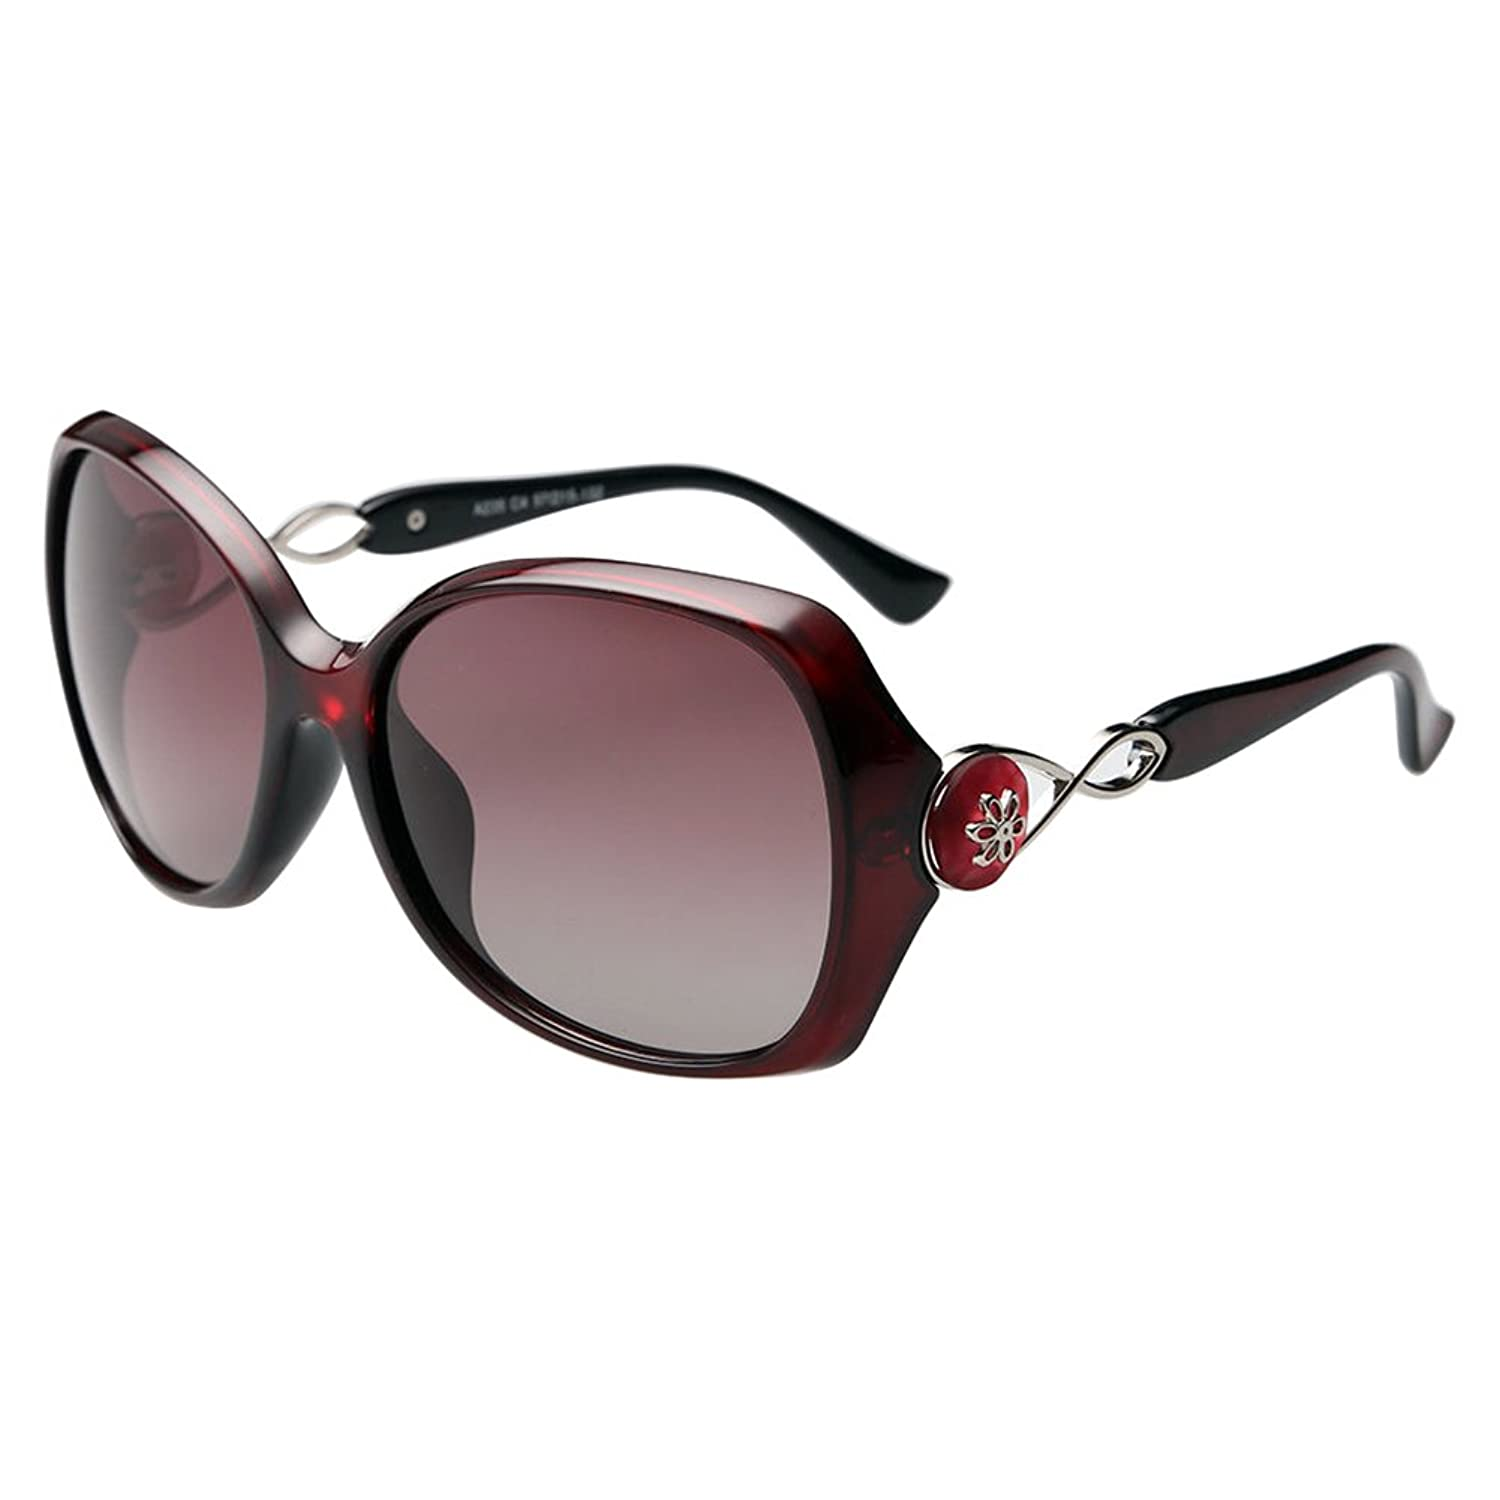 Burgundy Womens Retro Vintage Polarized Designer Sunglasses Fashion Eyewear Shades JU